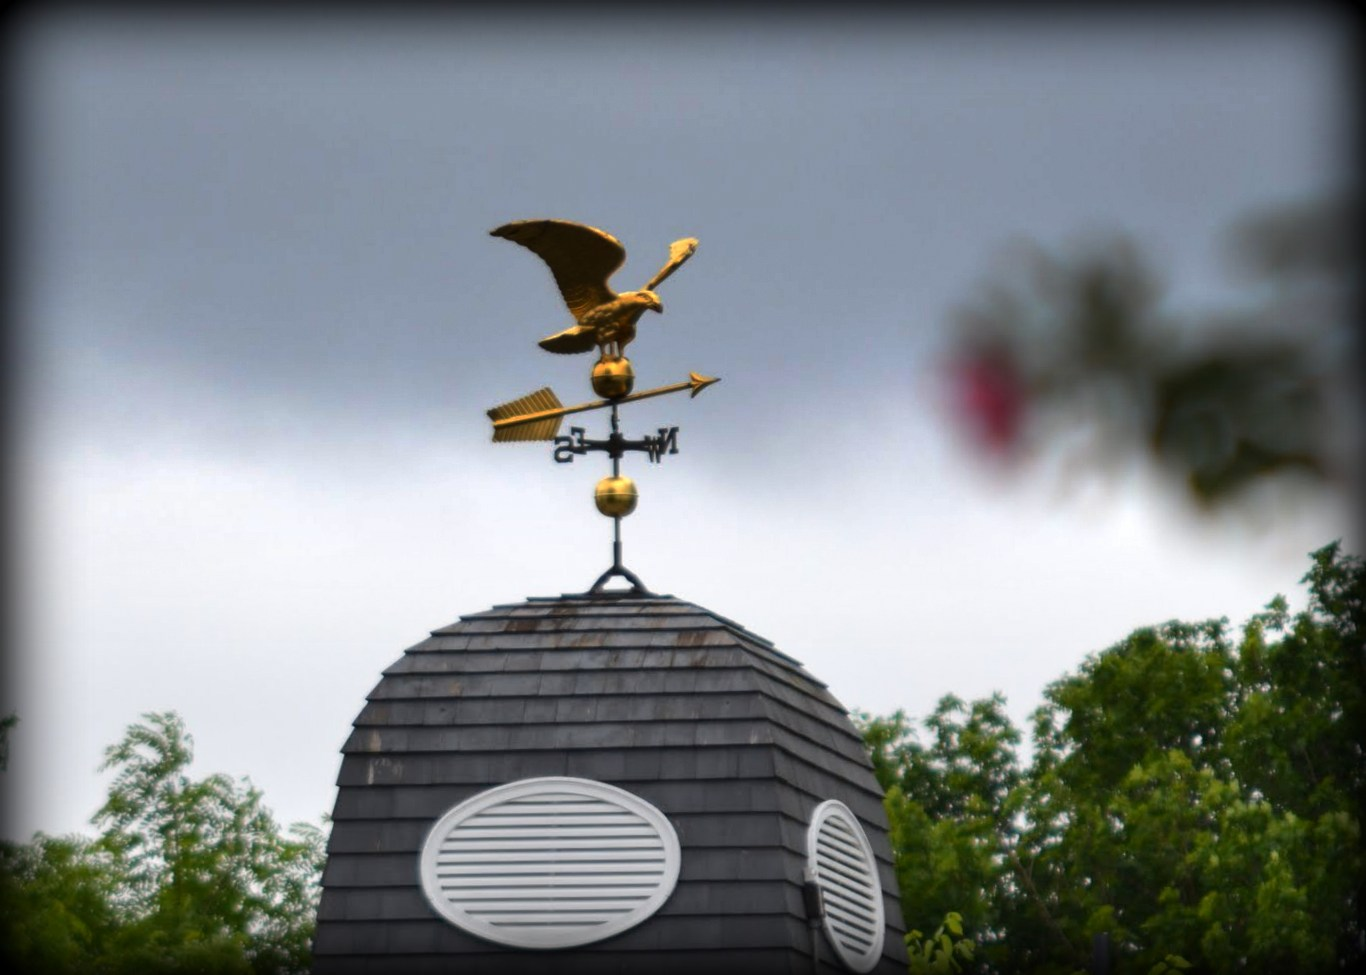 Eagle Weather Vane, Salem, Massachusetts, gold, eagle, weather vane